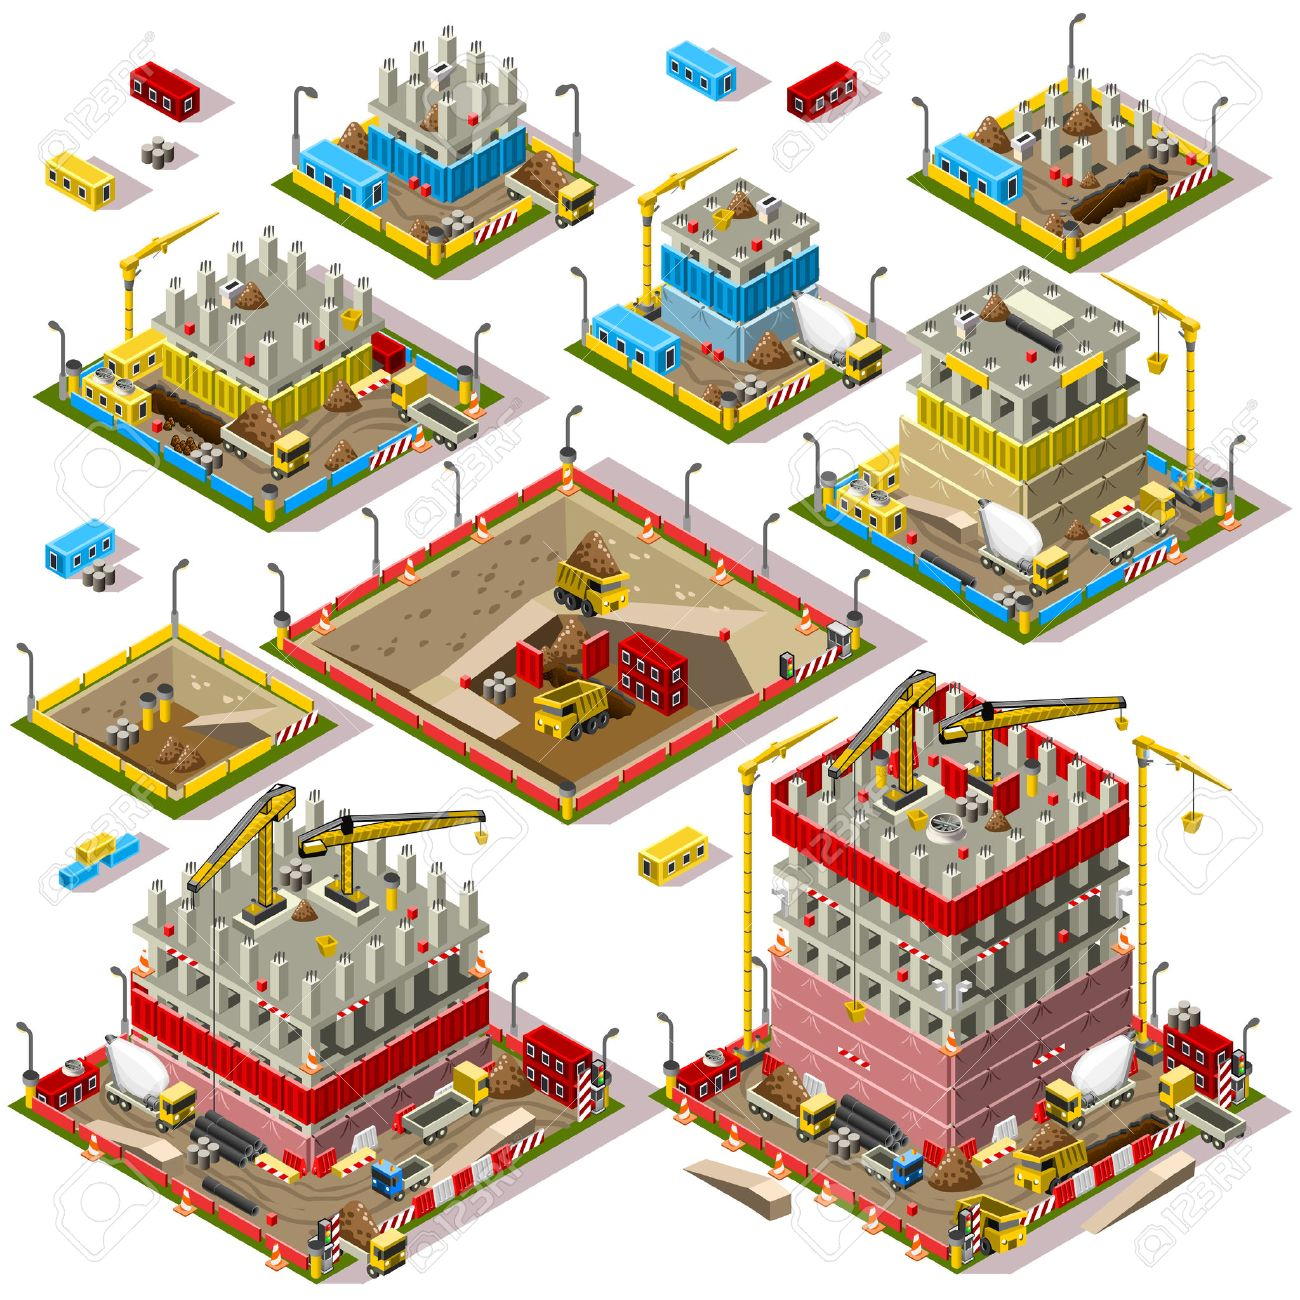 Flat 3d Isometric Buildings Construction Site City Map Icons Game Tile Elements Set. Colorful Warehouse Collection Isolated on White Vectors. Assemble Your Own 3D World - 51805438